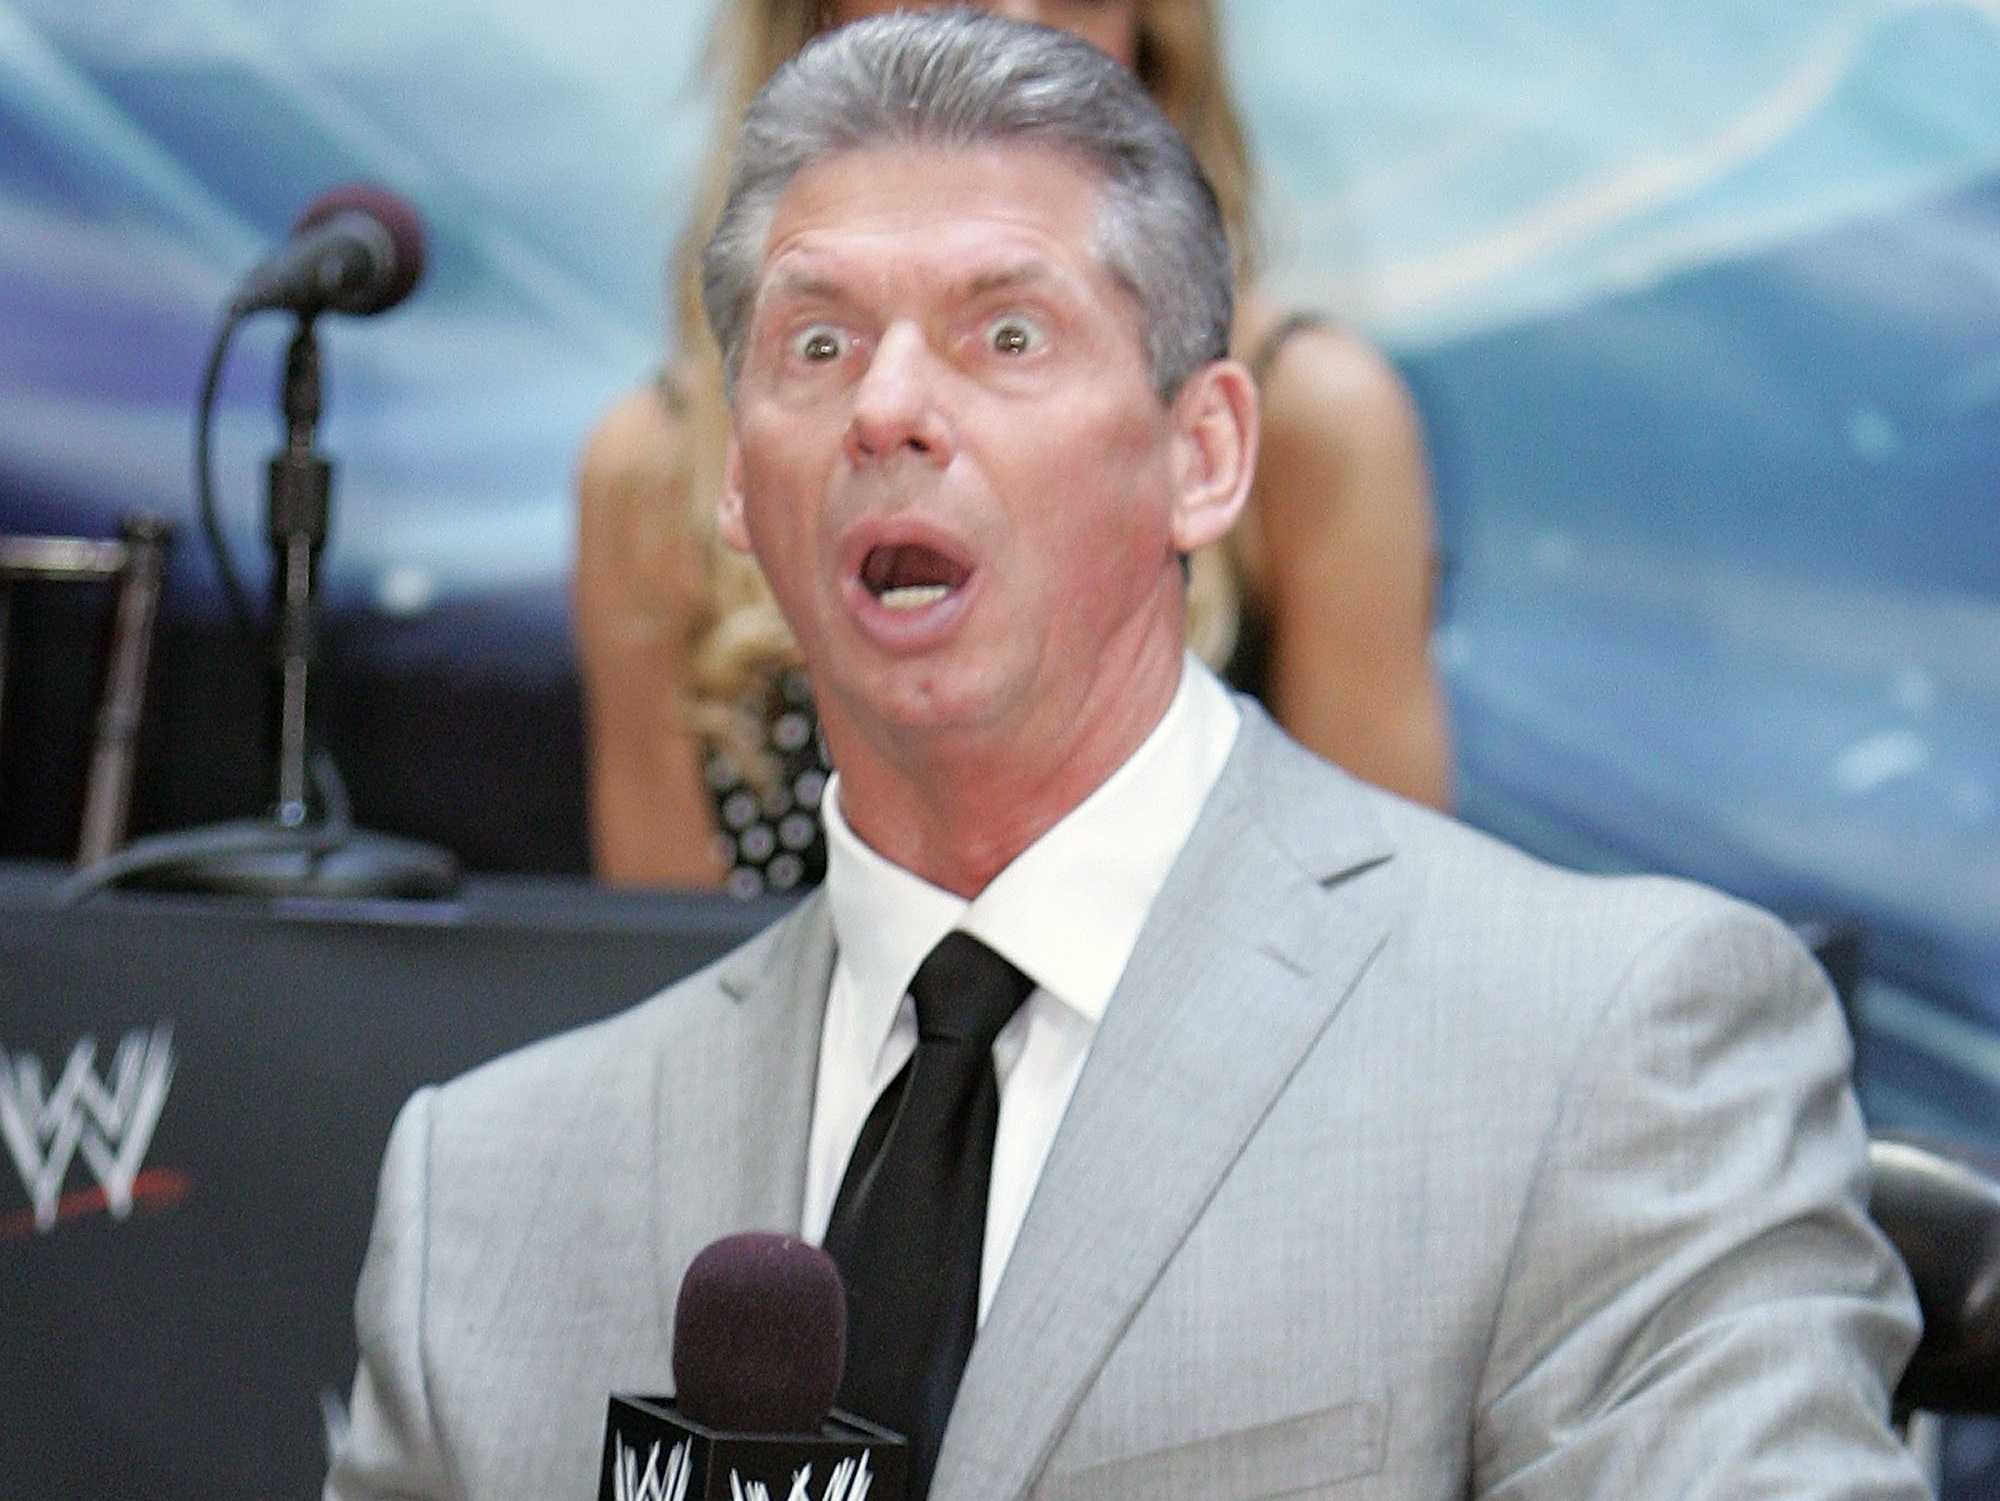 "Confidence in WWE programming may actually be at an all-time low, but don't worry, Vince McMahon's got the solution: more Roman Reigns, dammit! The ""wild card rule"" was announced this week, diluting the brand split even more and making us wonder if Vince has finally truly lost his mind. Luckily, a compilation of insane Vince stories made the rounds this week as well, so we talk about those as well on this week's episode of Poor Taste Wrestling."